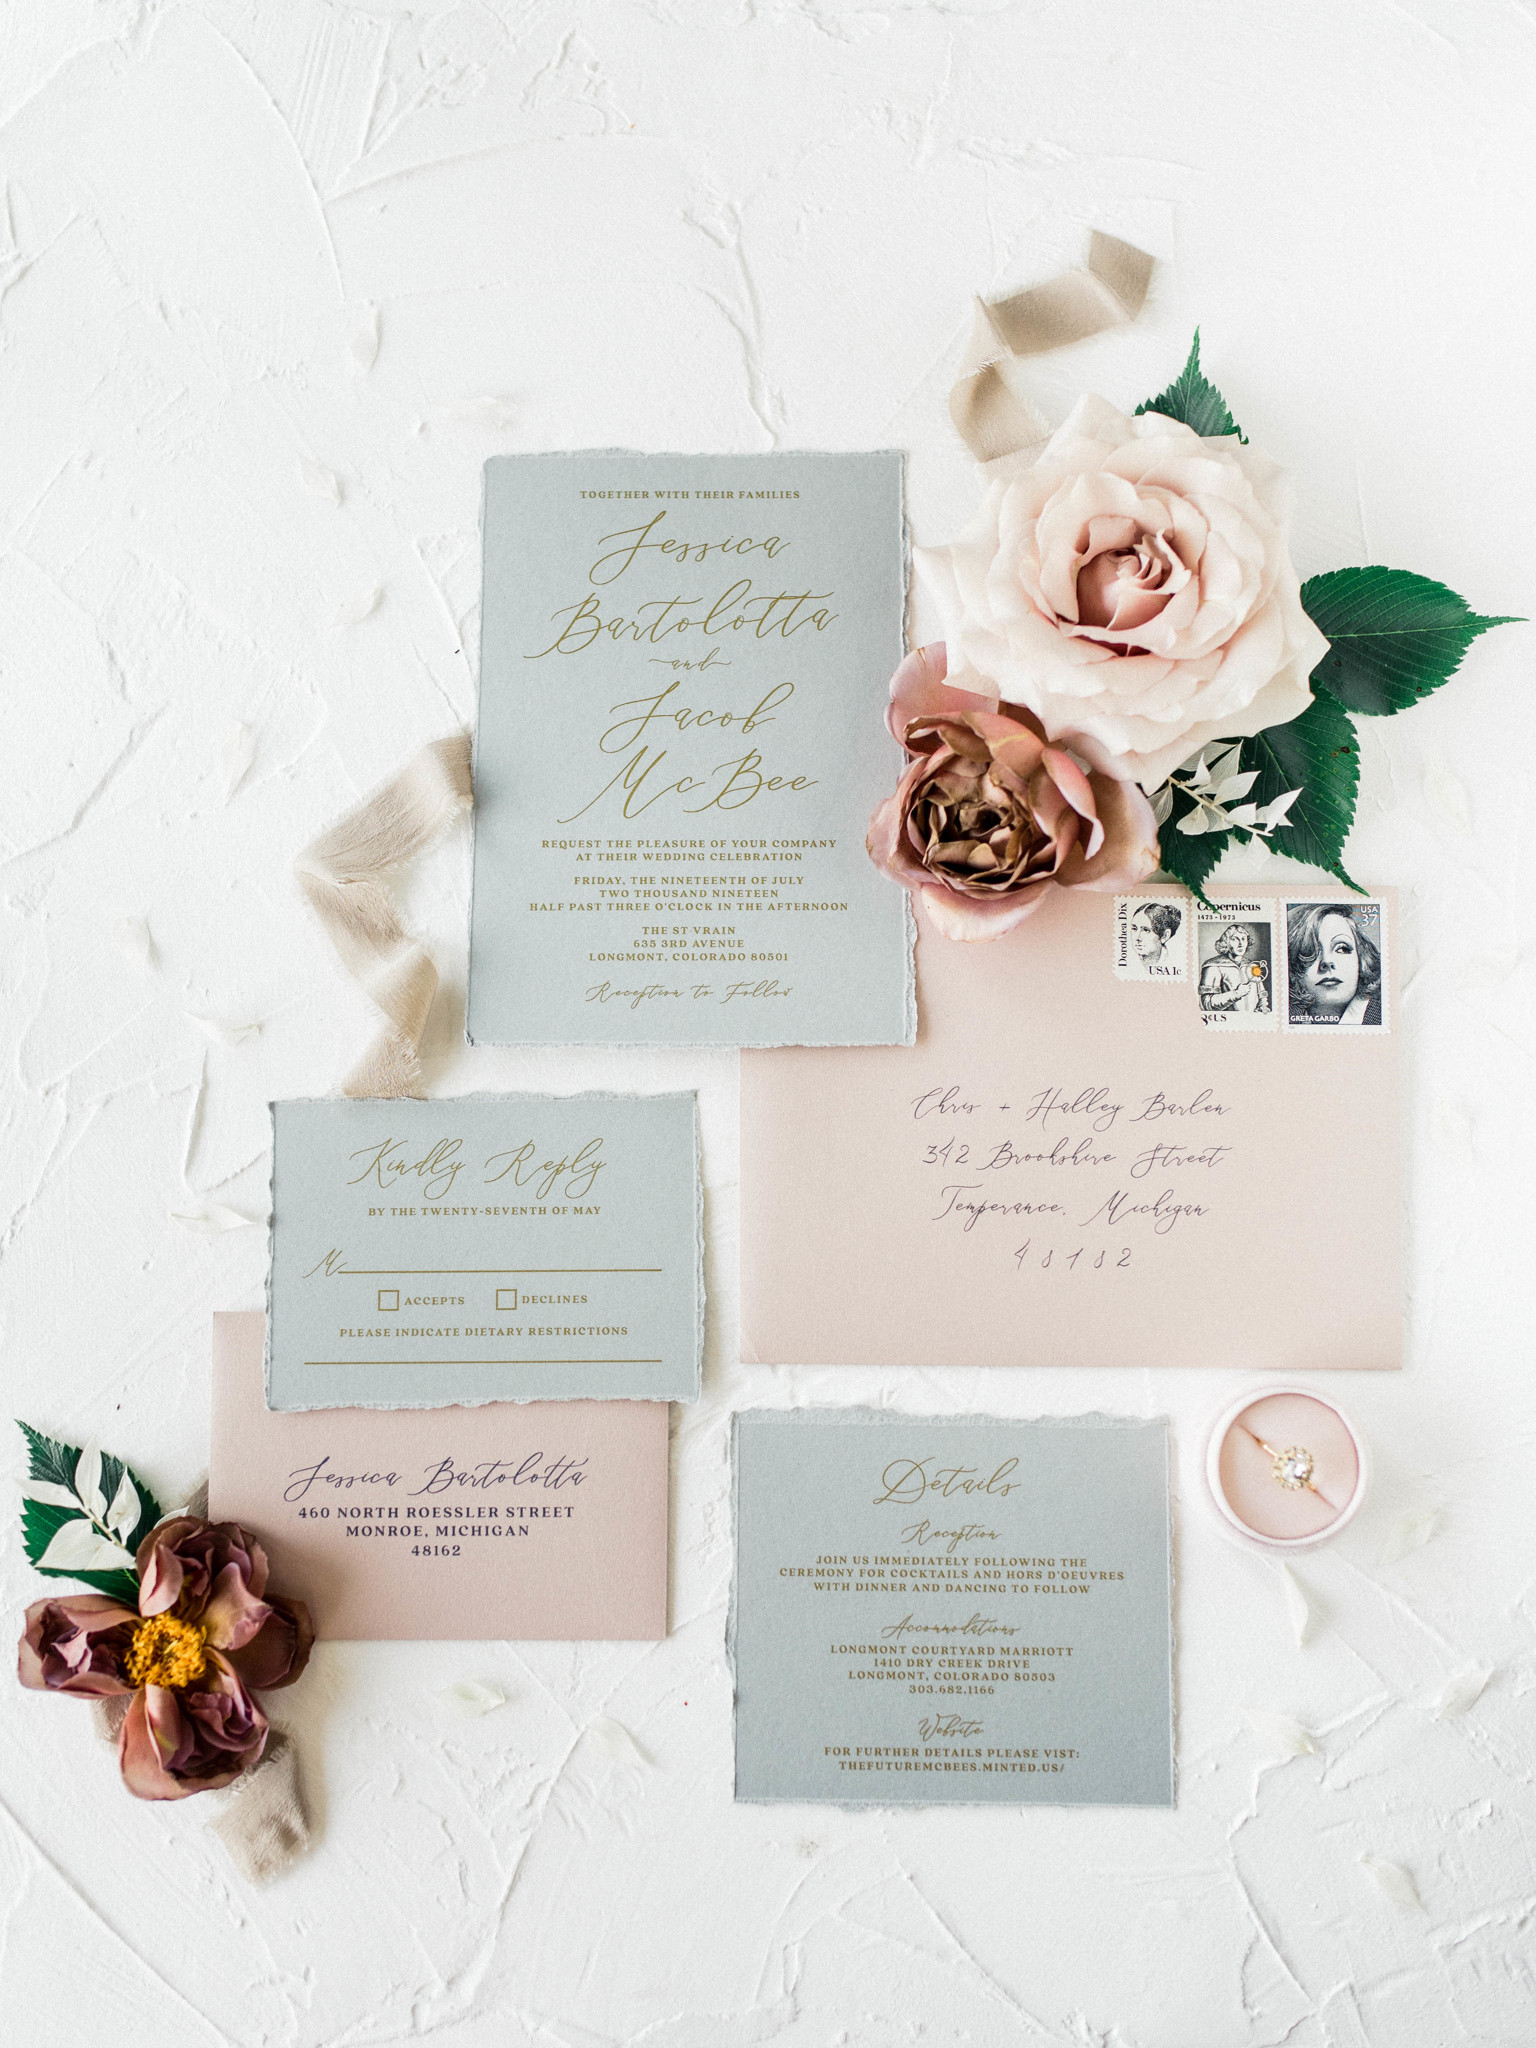 Wedding stationery suite: Whimsical mauve wedding inspiration on Alexa Kay Events. See more romantic wedding ideas at alexakayevents.com!